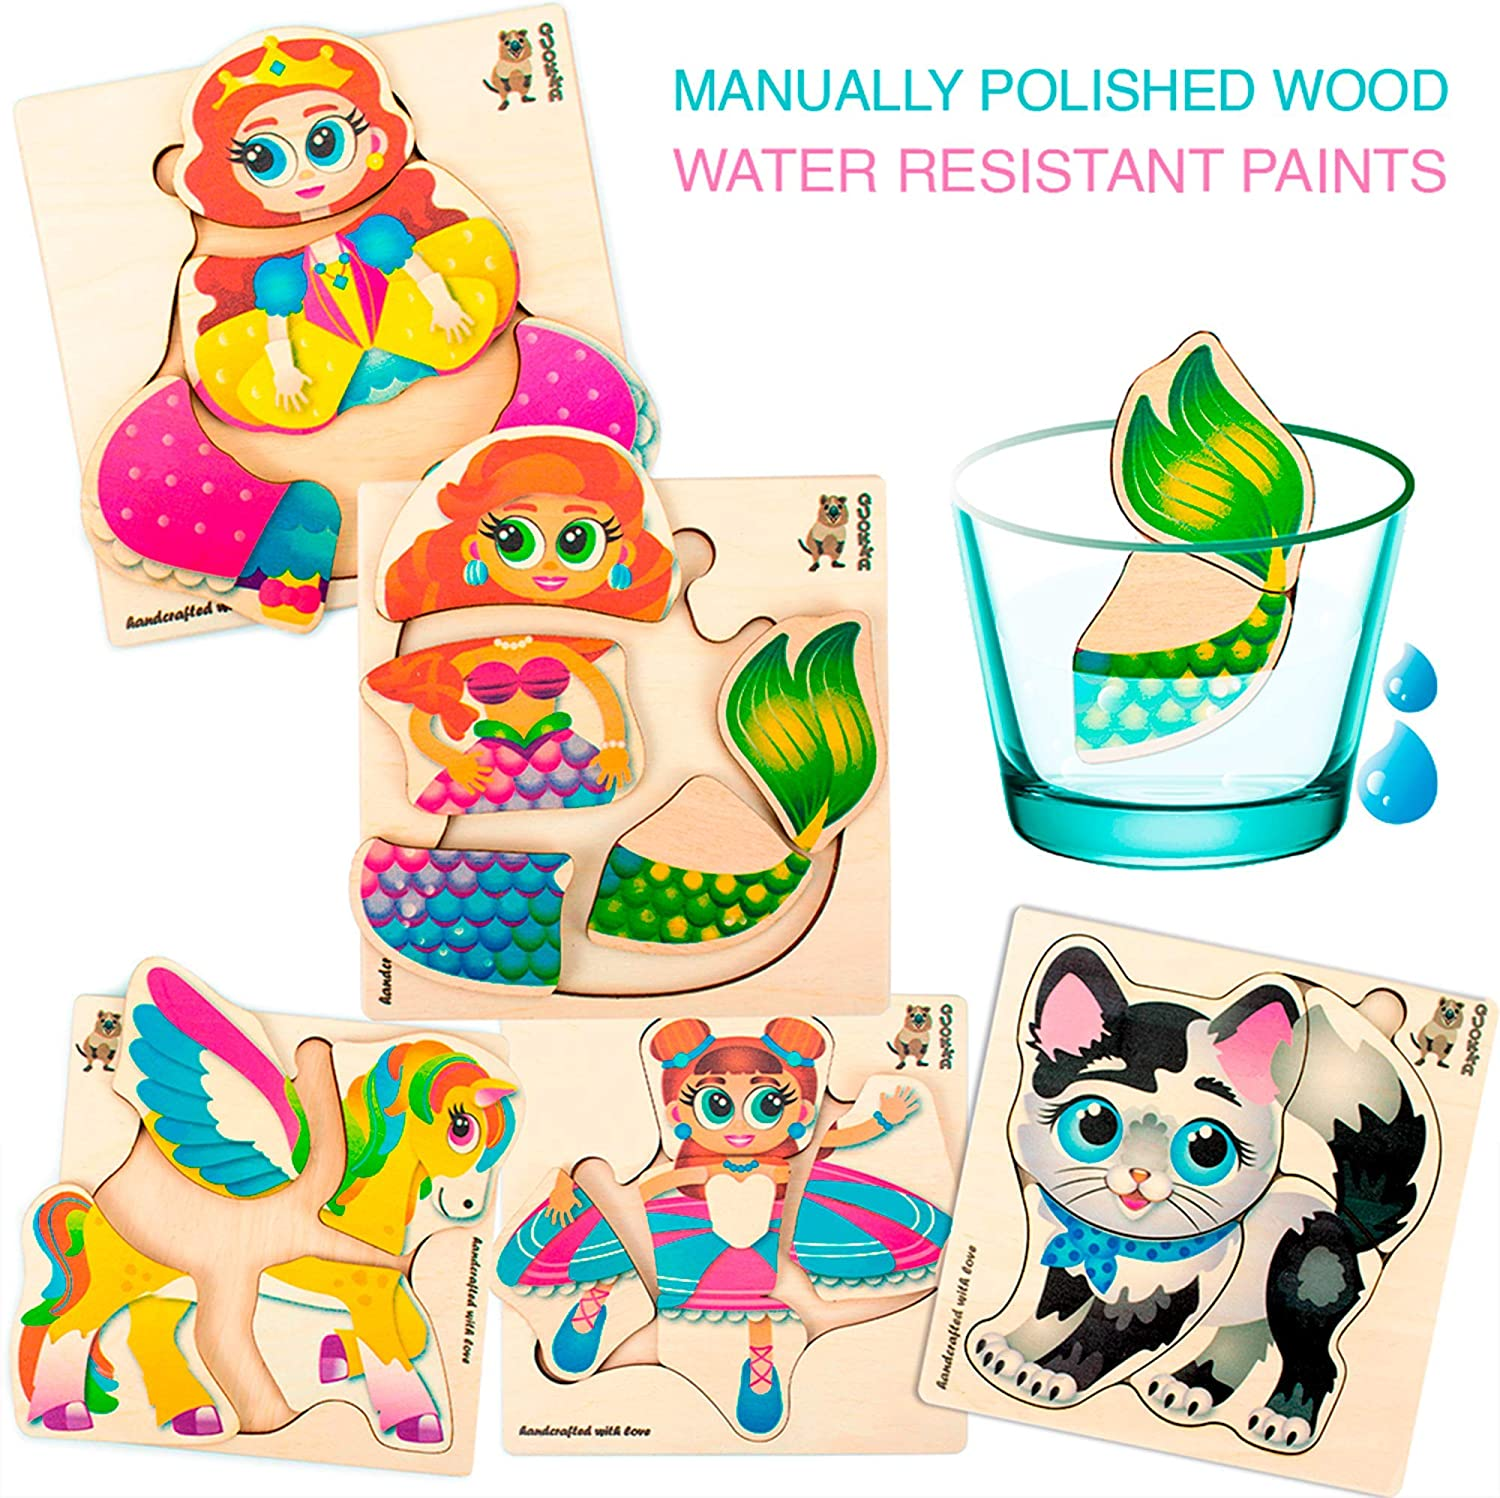 Quokka Wooden Jigsaw Puzzles for Toddler Girls 1 2 3 4 Year Olds Unicorn Marmed Educational Wood Preschool Toys for Kids Ages 2-4 Princess Baby Girl Matching Games 6 Pack Puzzle with Ballerine